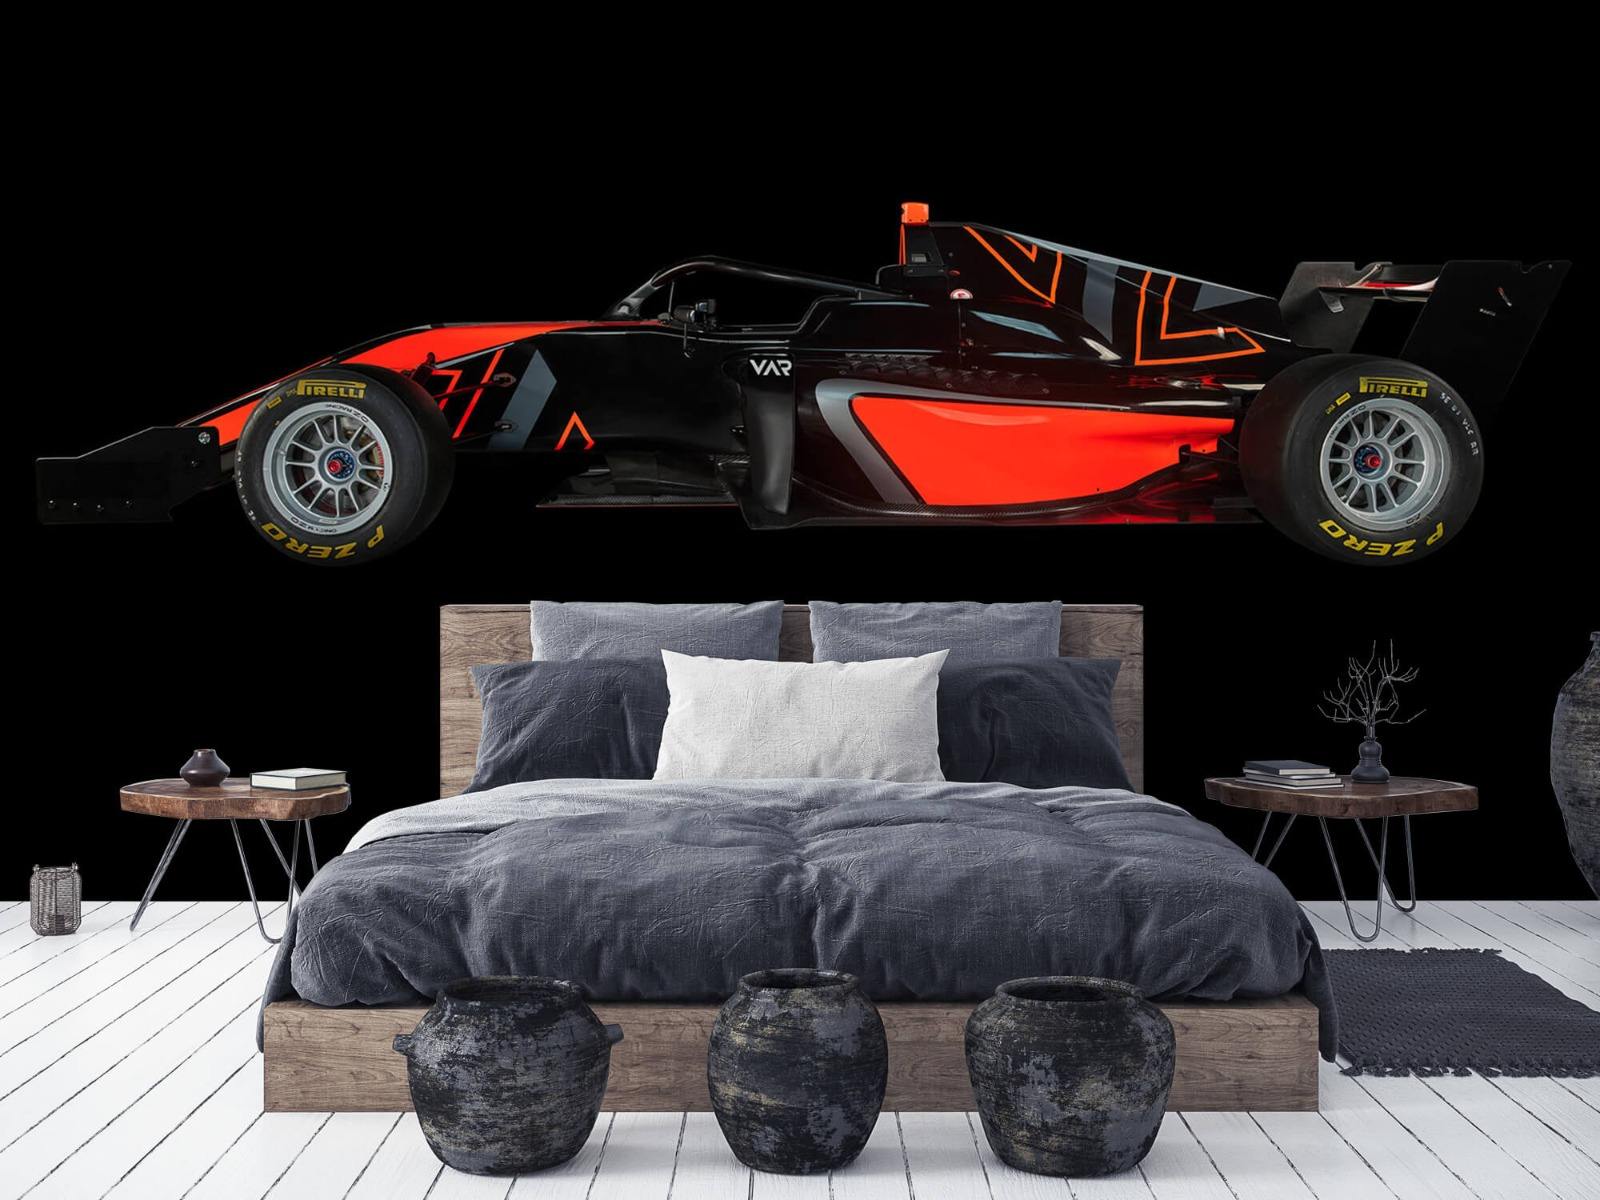 Sportauto's - Formule 3 - Lower side view - dark - Tienerkamer 6